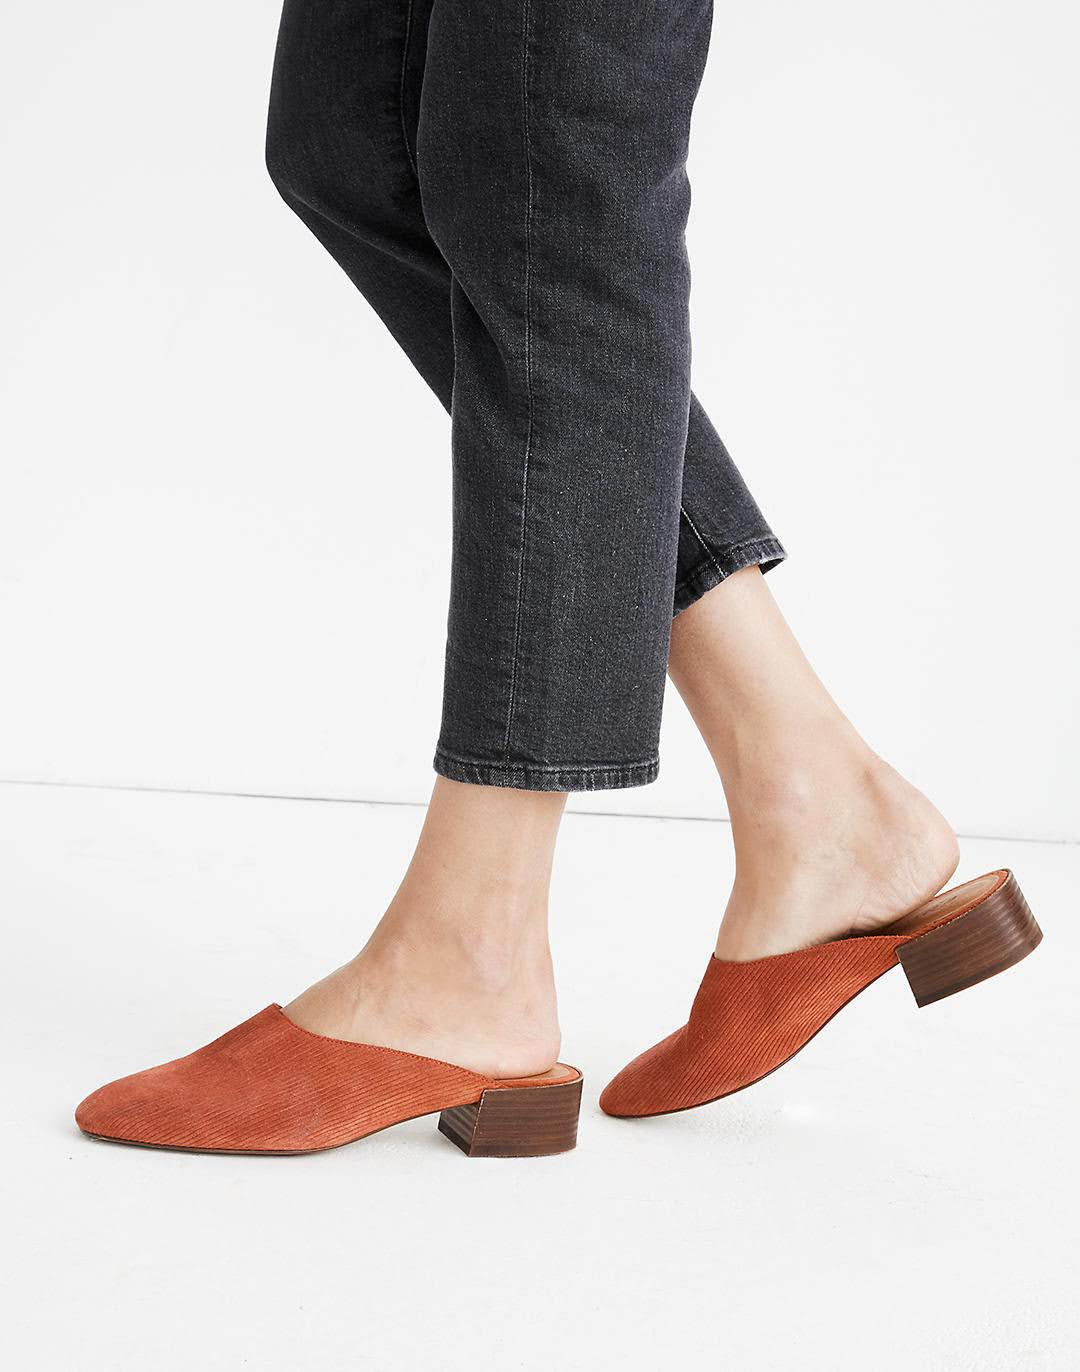 Madewell Mules Corduroy size 6